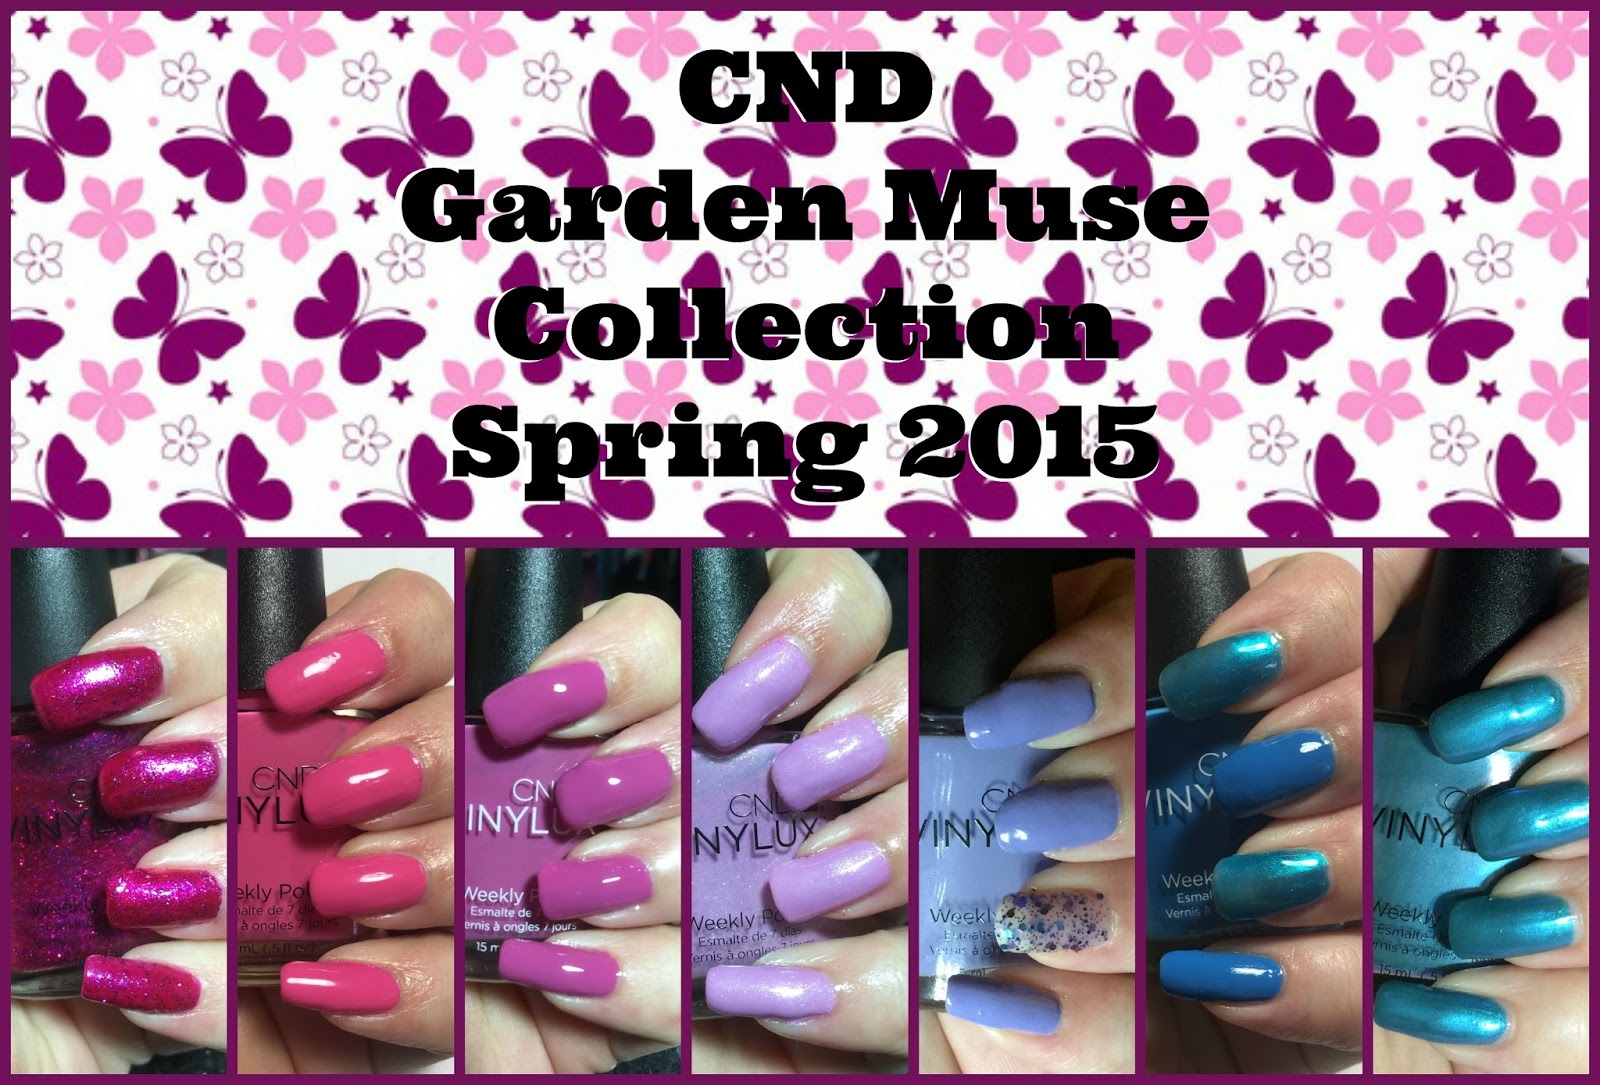 CND Garden Muse Collection Spring 2015